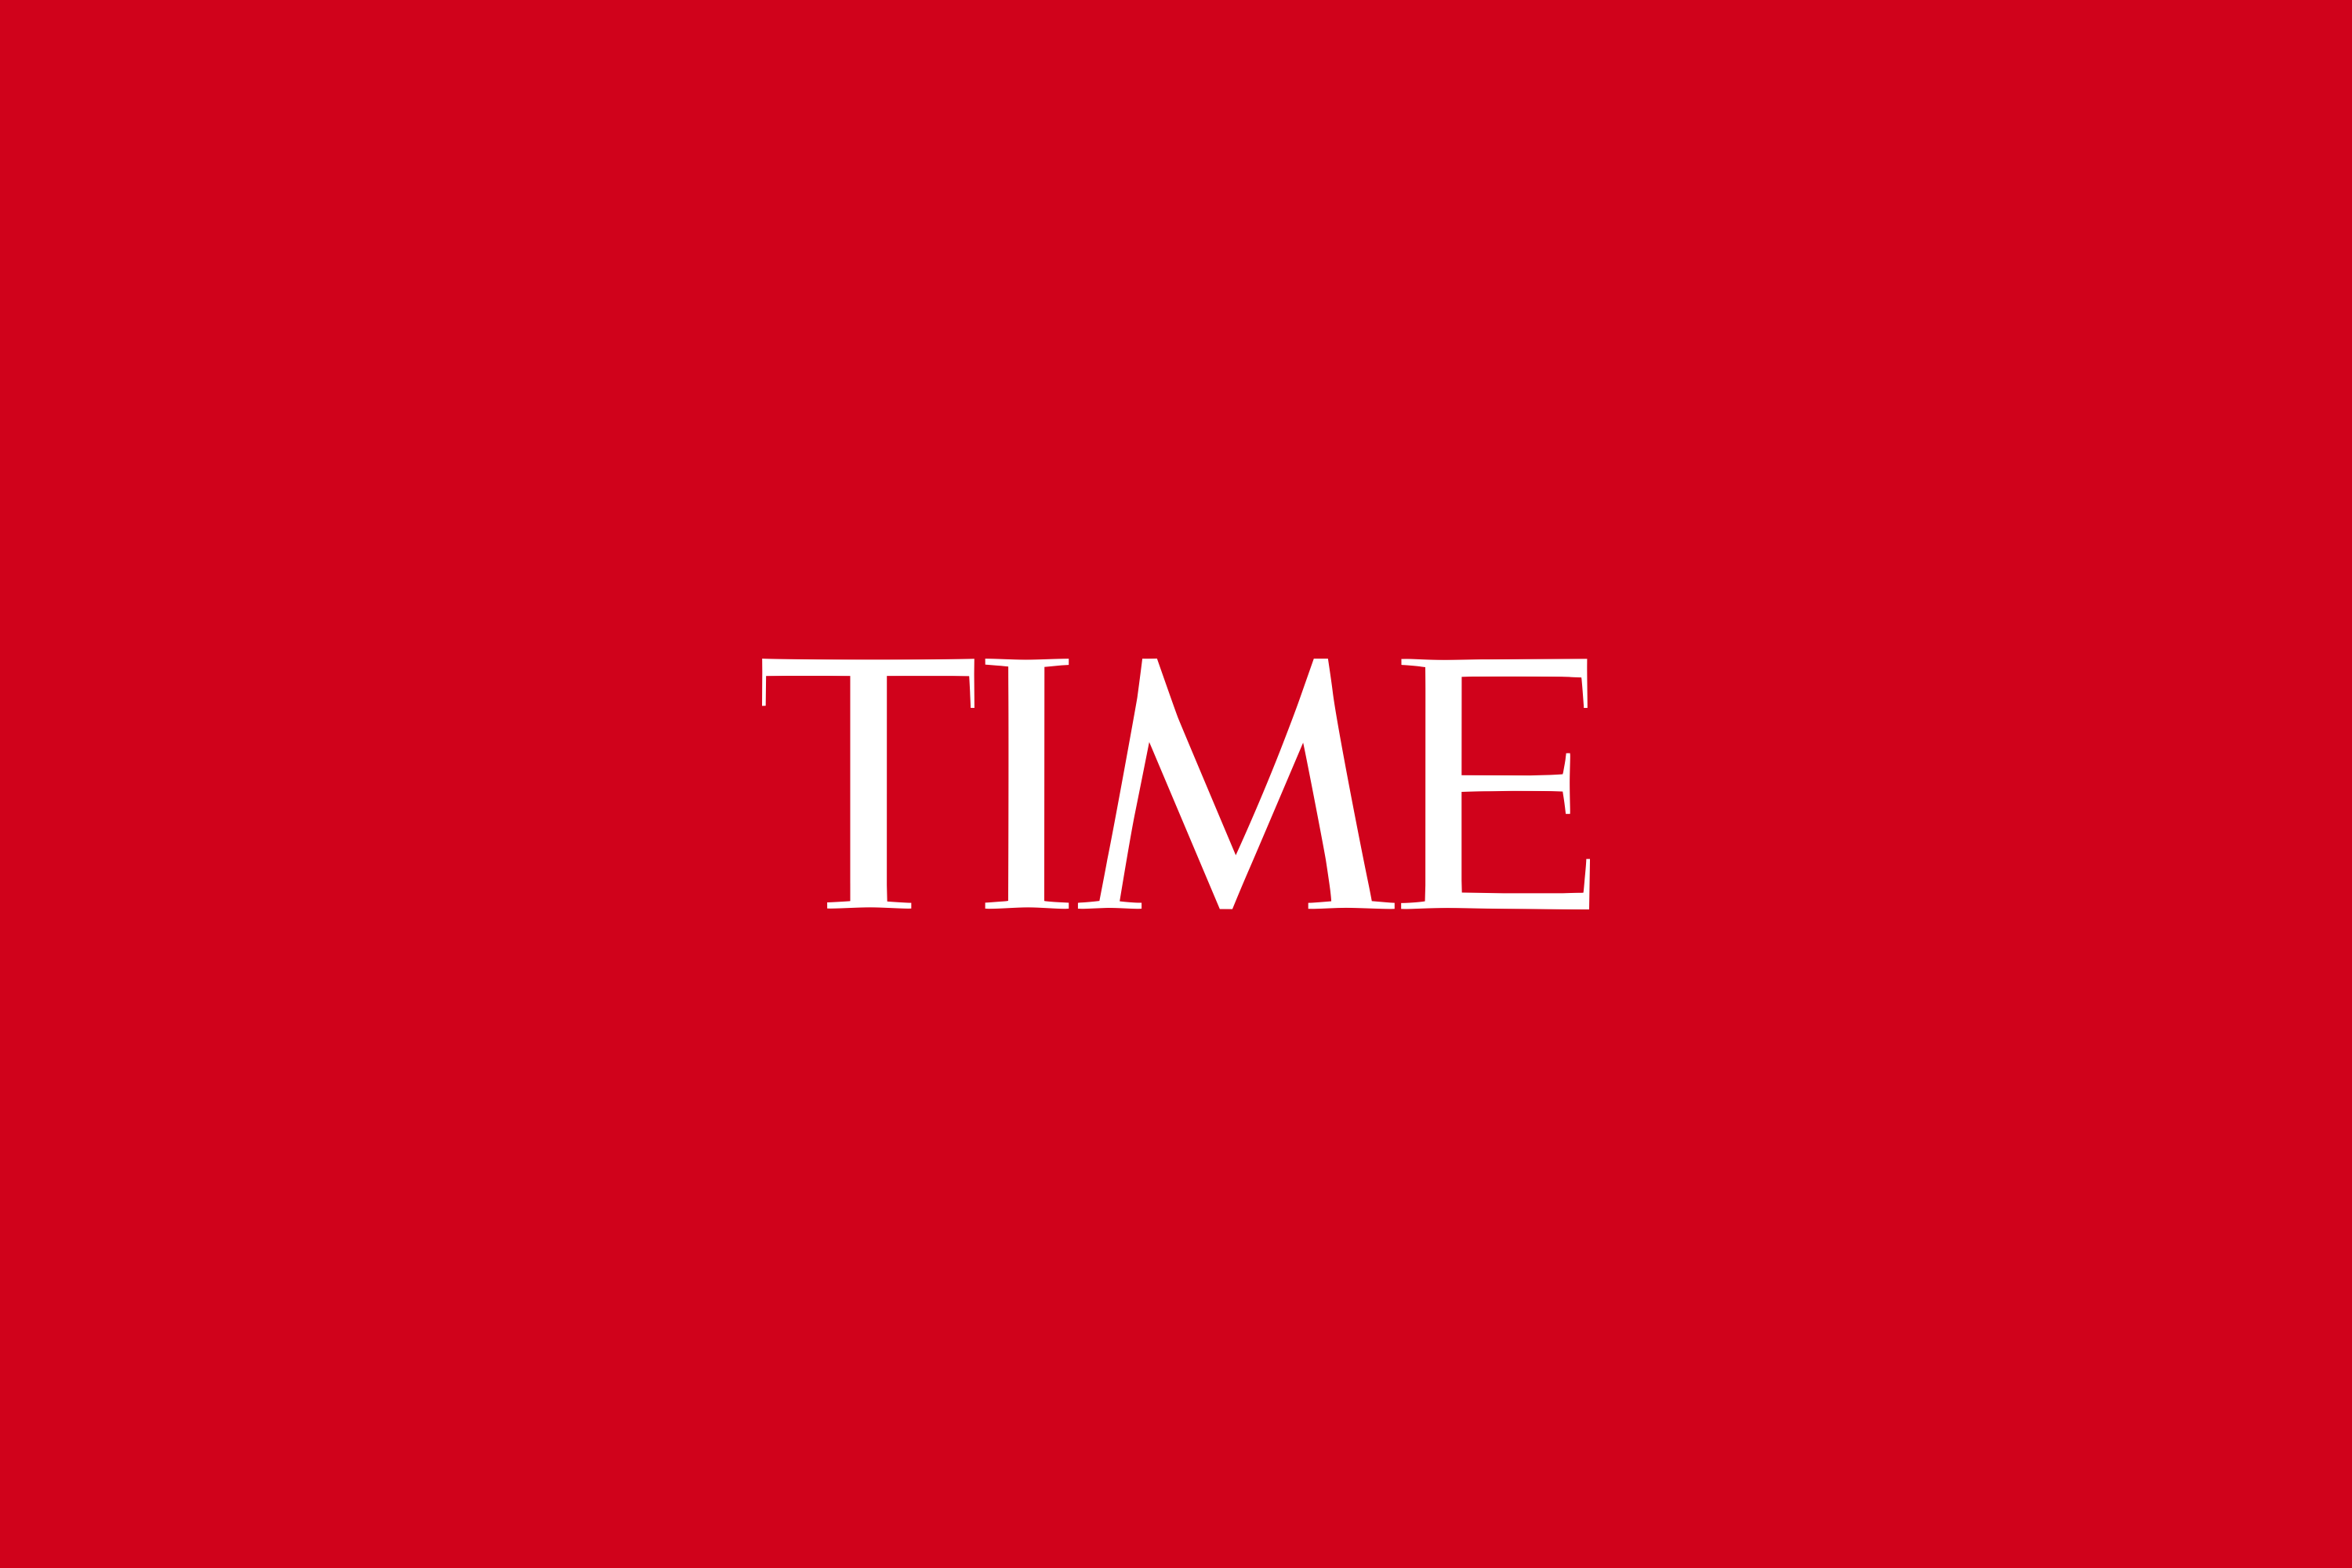 If you ve got a small bathroom don t worry it s actually average - Time Magazine Default Image